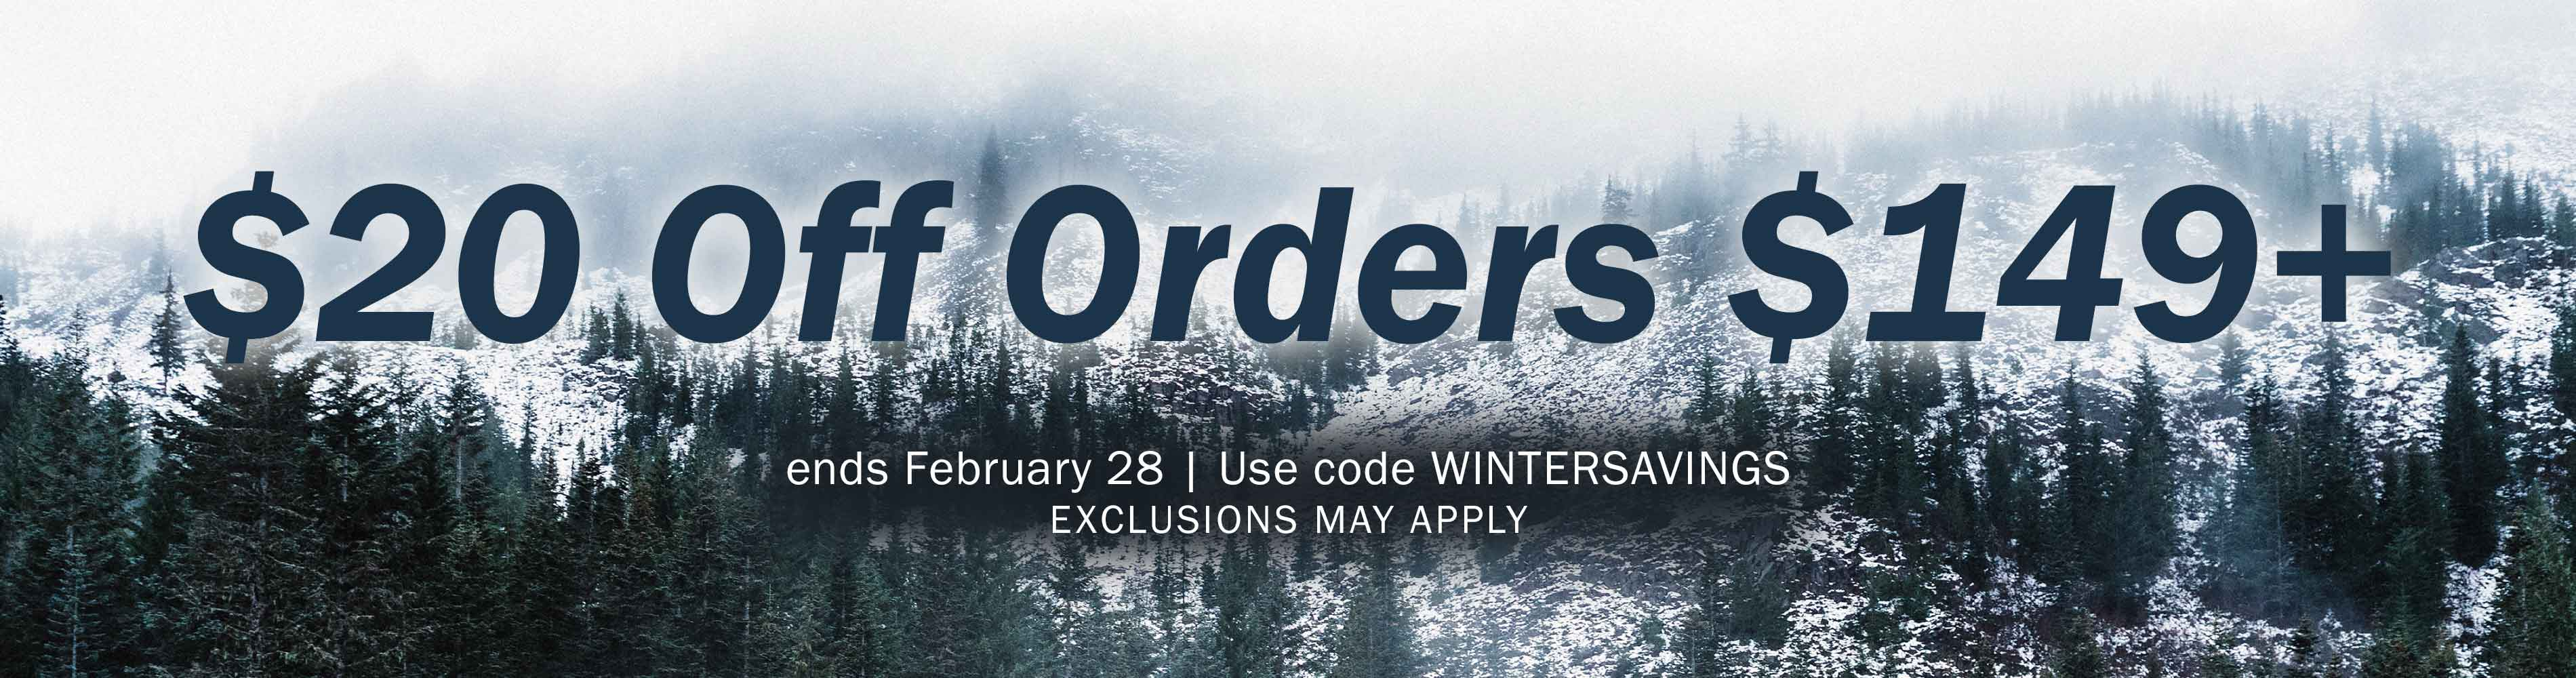 $20 Off Orders $149+ through February 28 with code WINTERSAVINGS. Exclusions may apply.